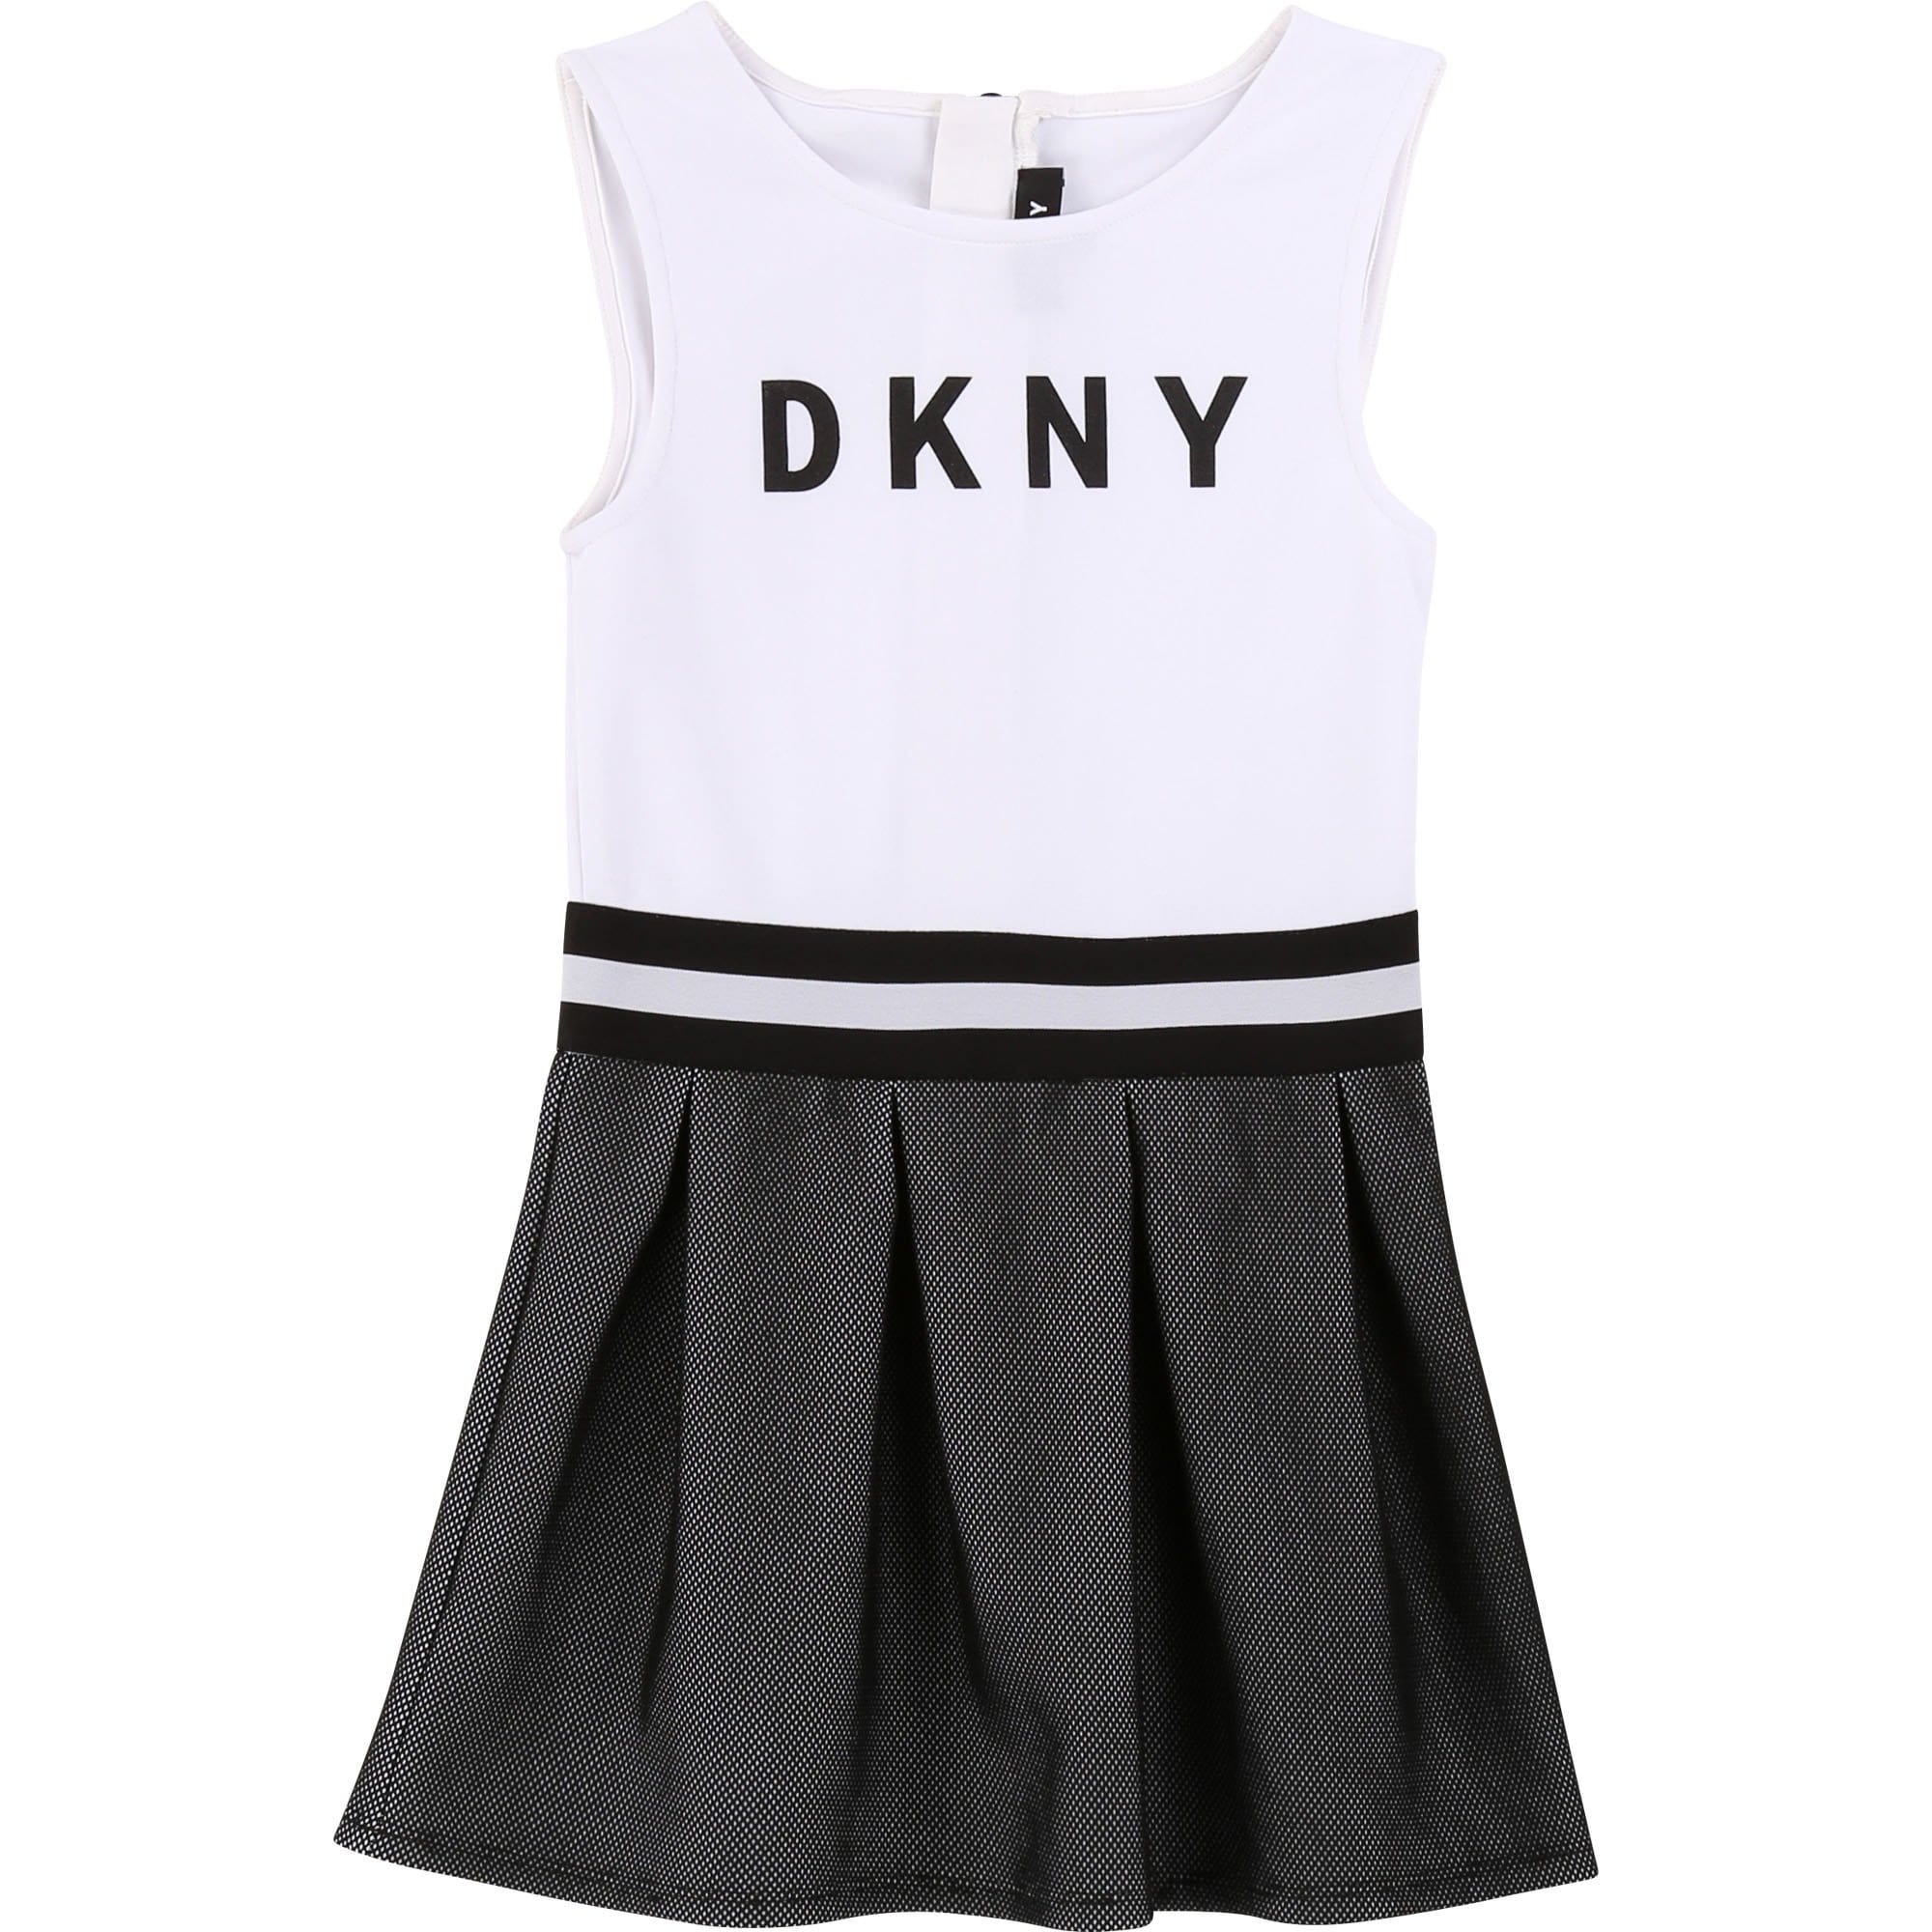 DKNY Sleeveless Dress D32744/M411